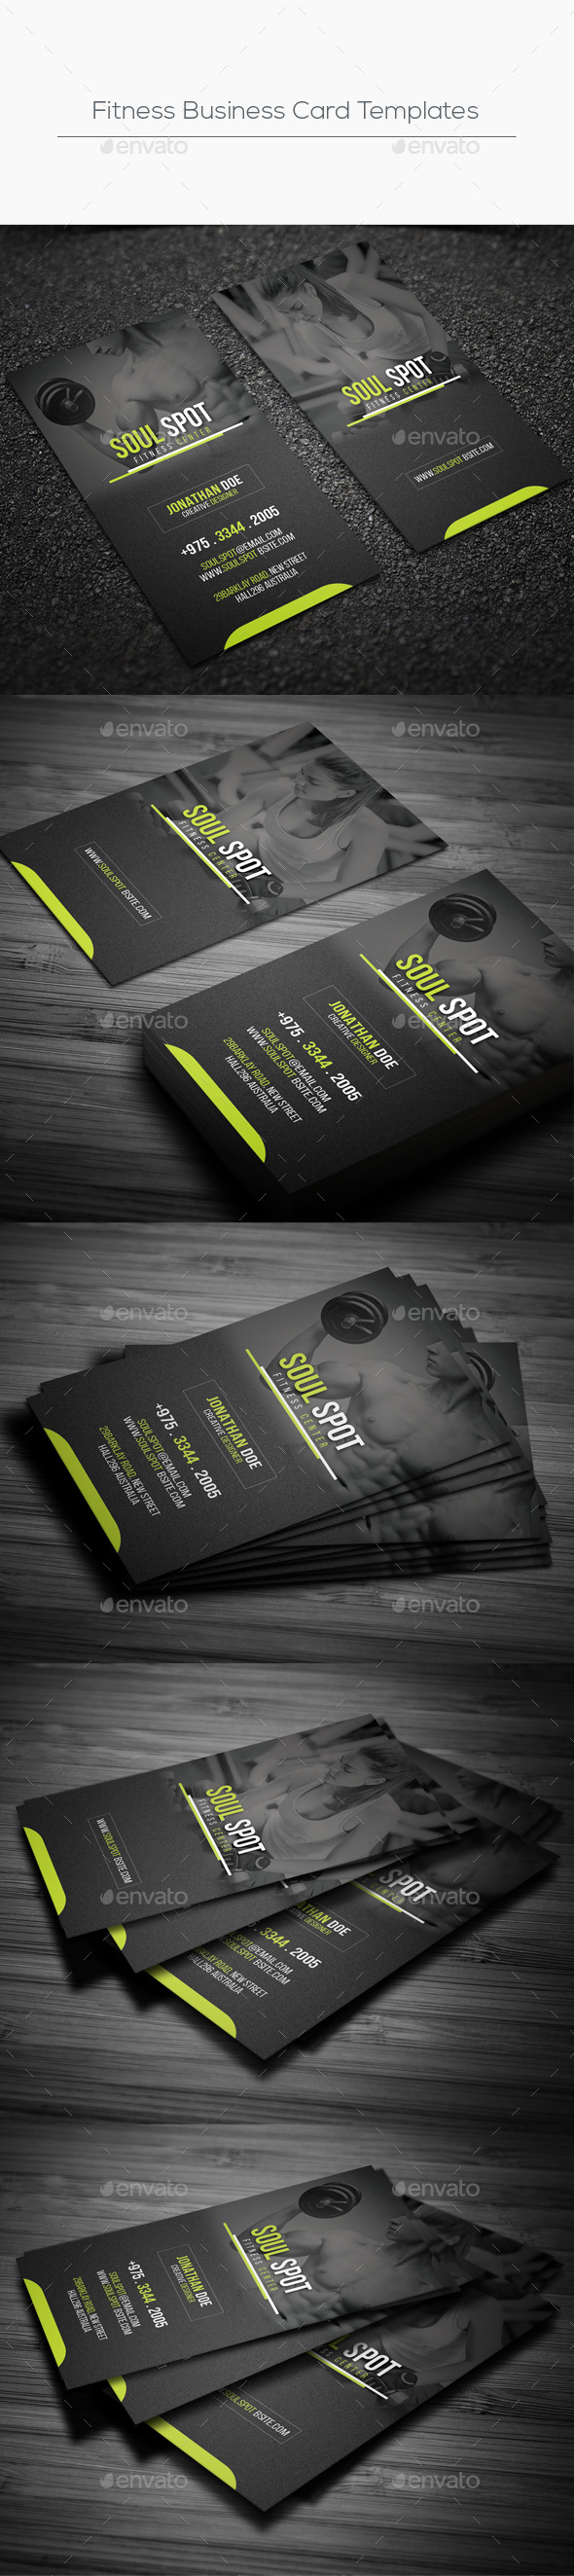 Fitness Business Card Templates By Designsoul GraphicRiver - Fitness business card template